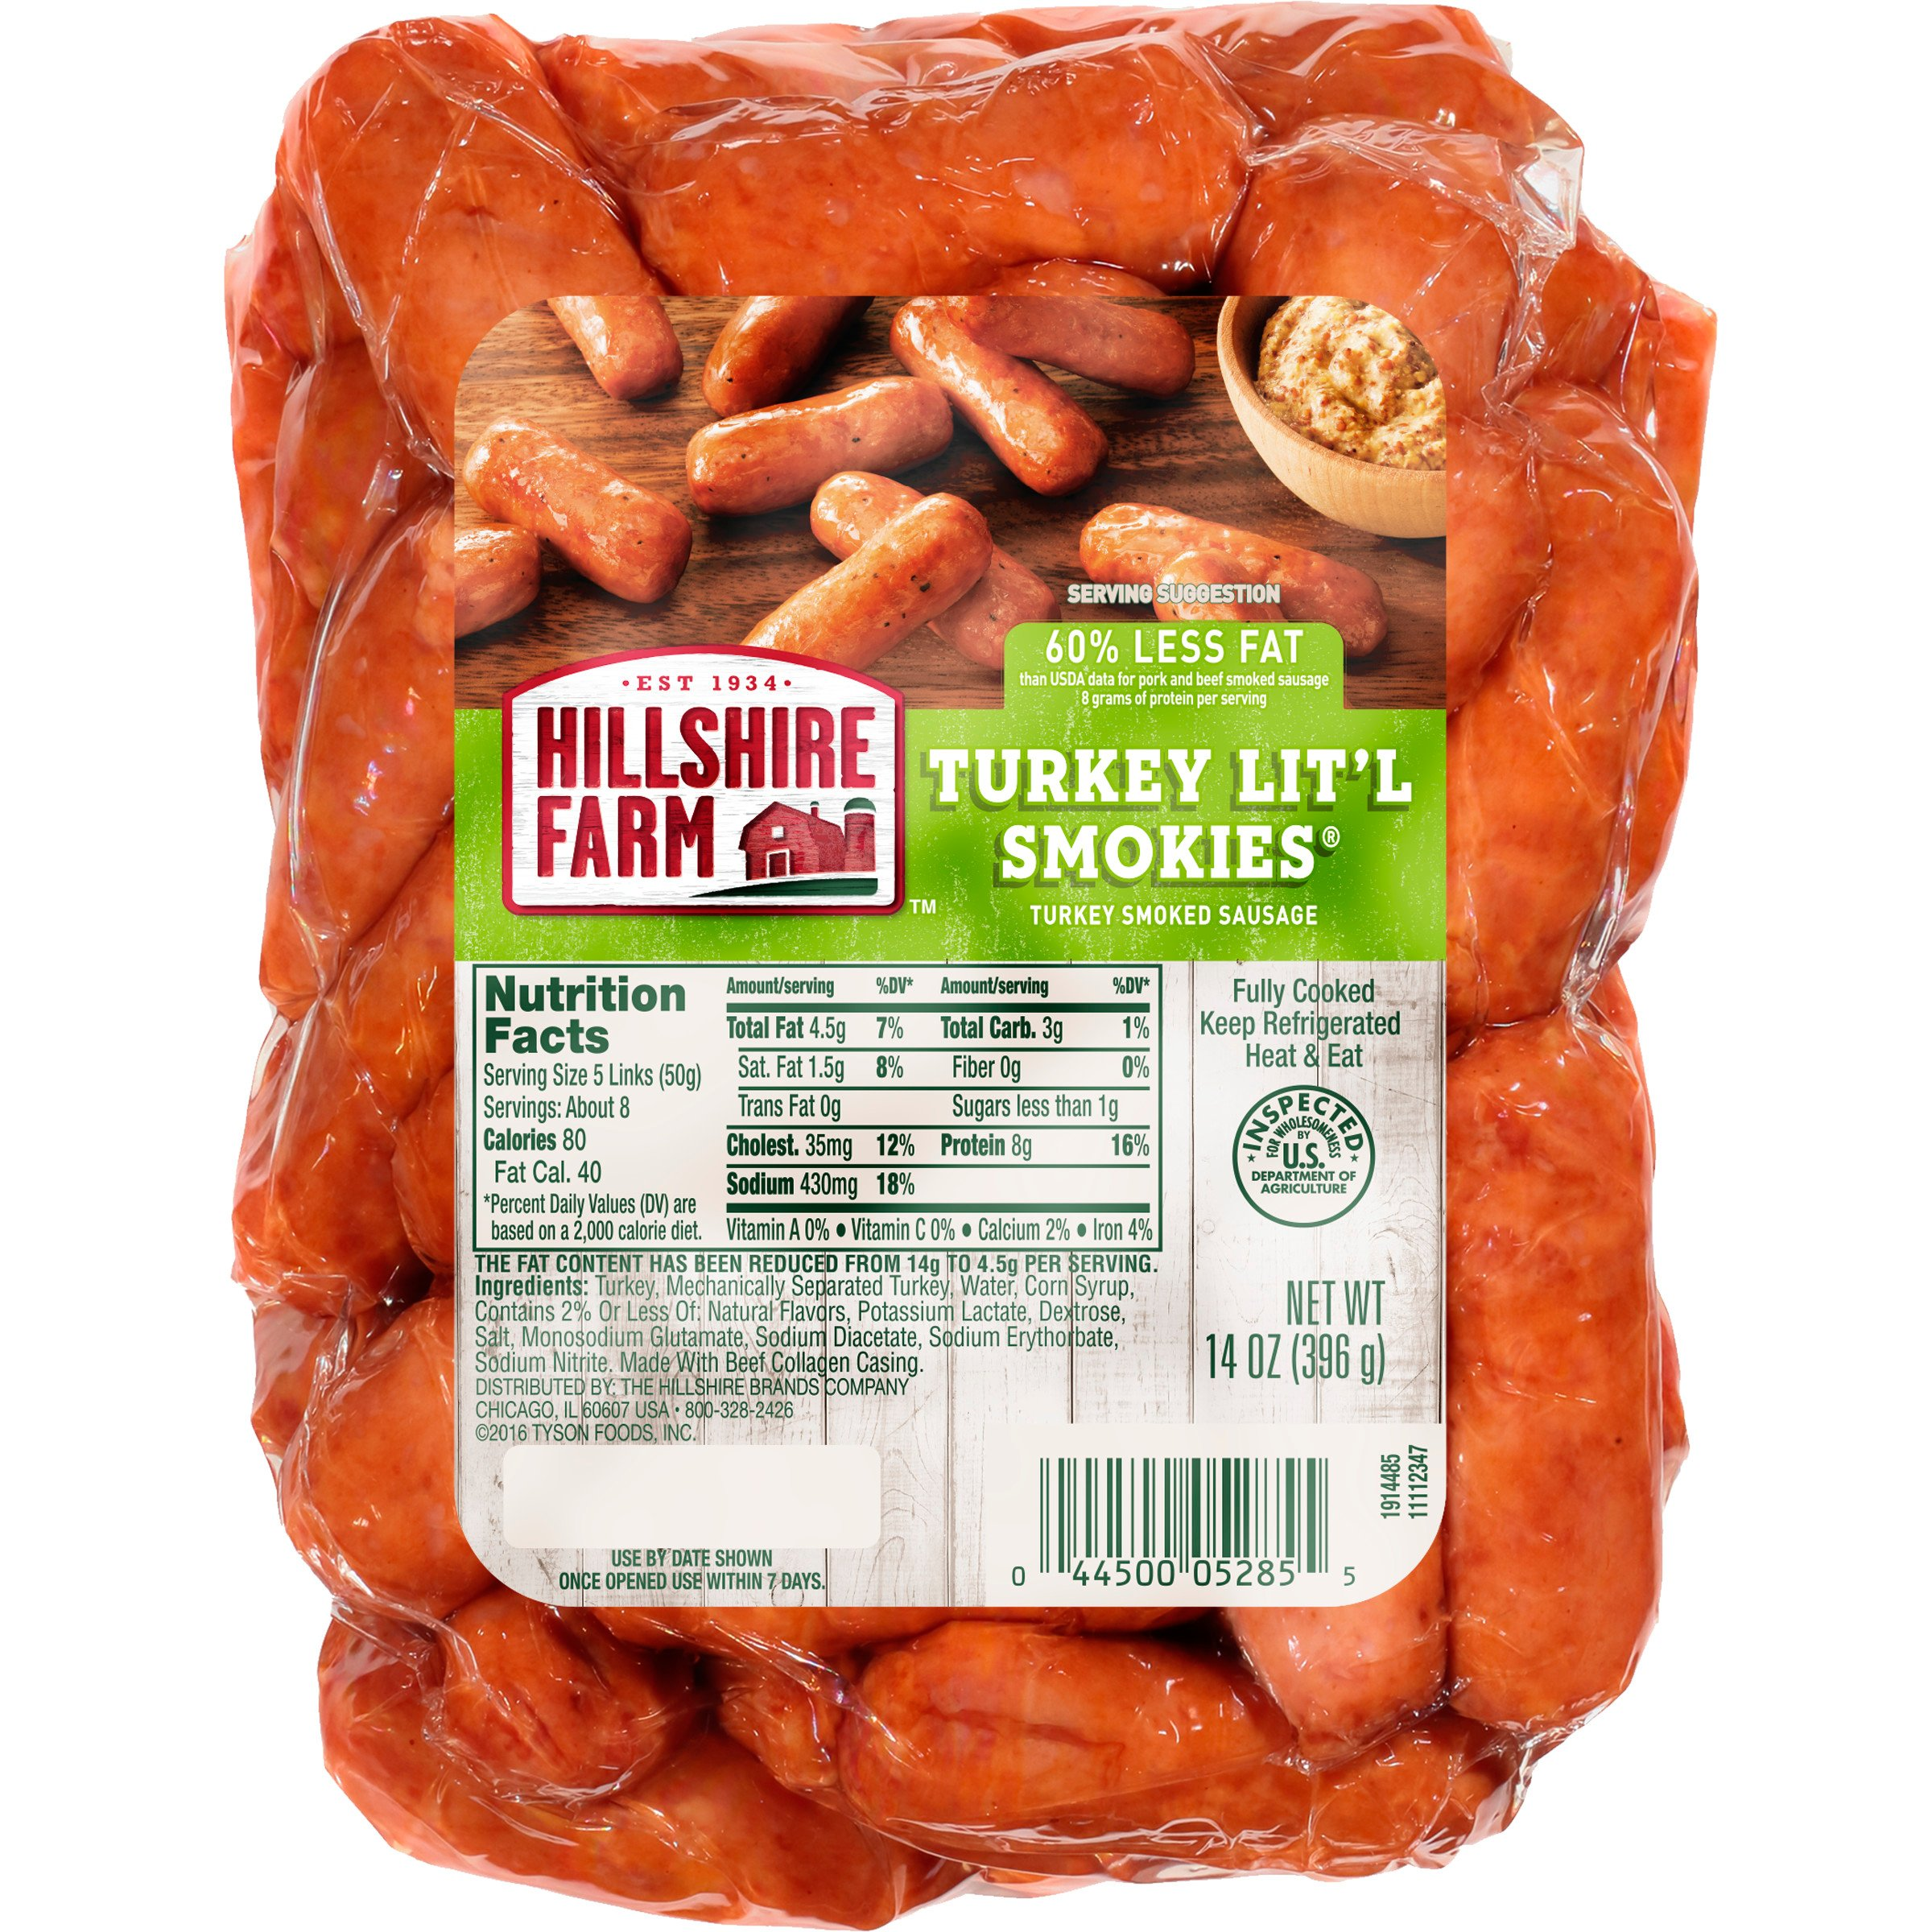 Hillshire Farm Lit L Smokies Turkey Sausage Shop Sausage At H E B